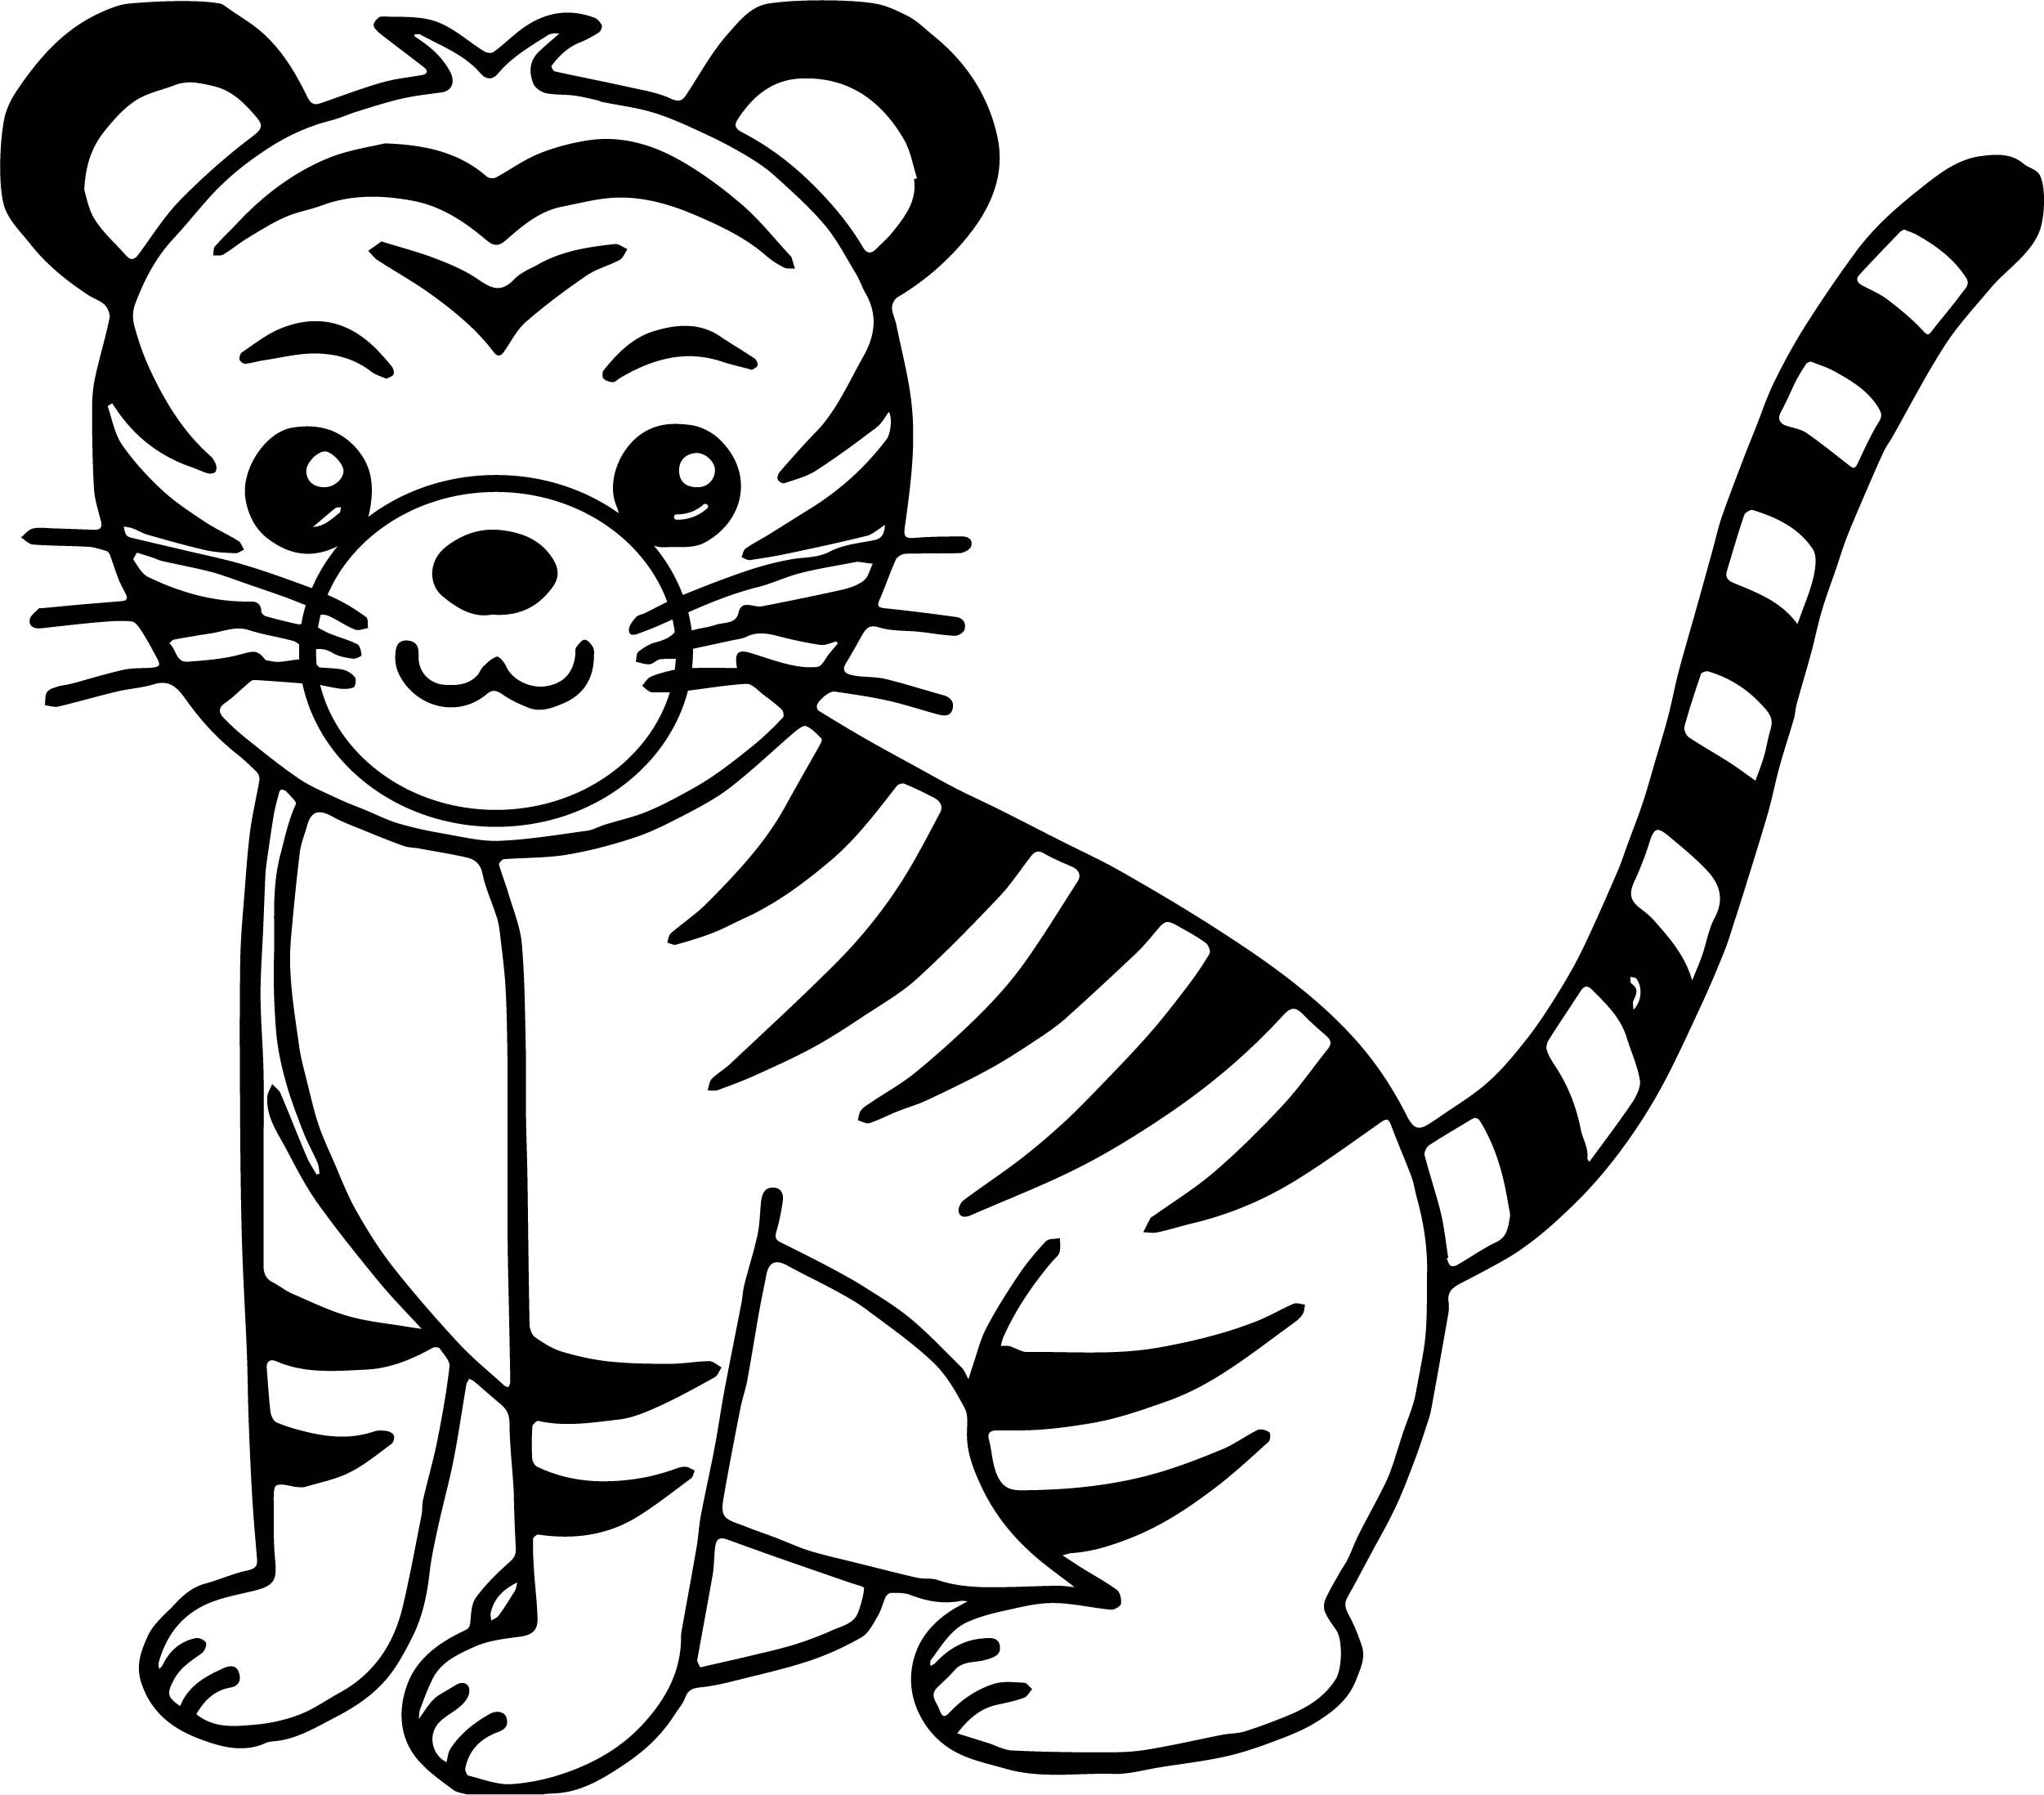 Awesome Cute Cat Tiger Coloring Page Dinosaur Coloring Pages Animal Coloring Pages Bird Coloring Pages